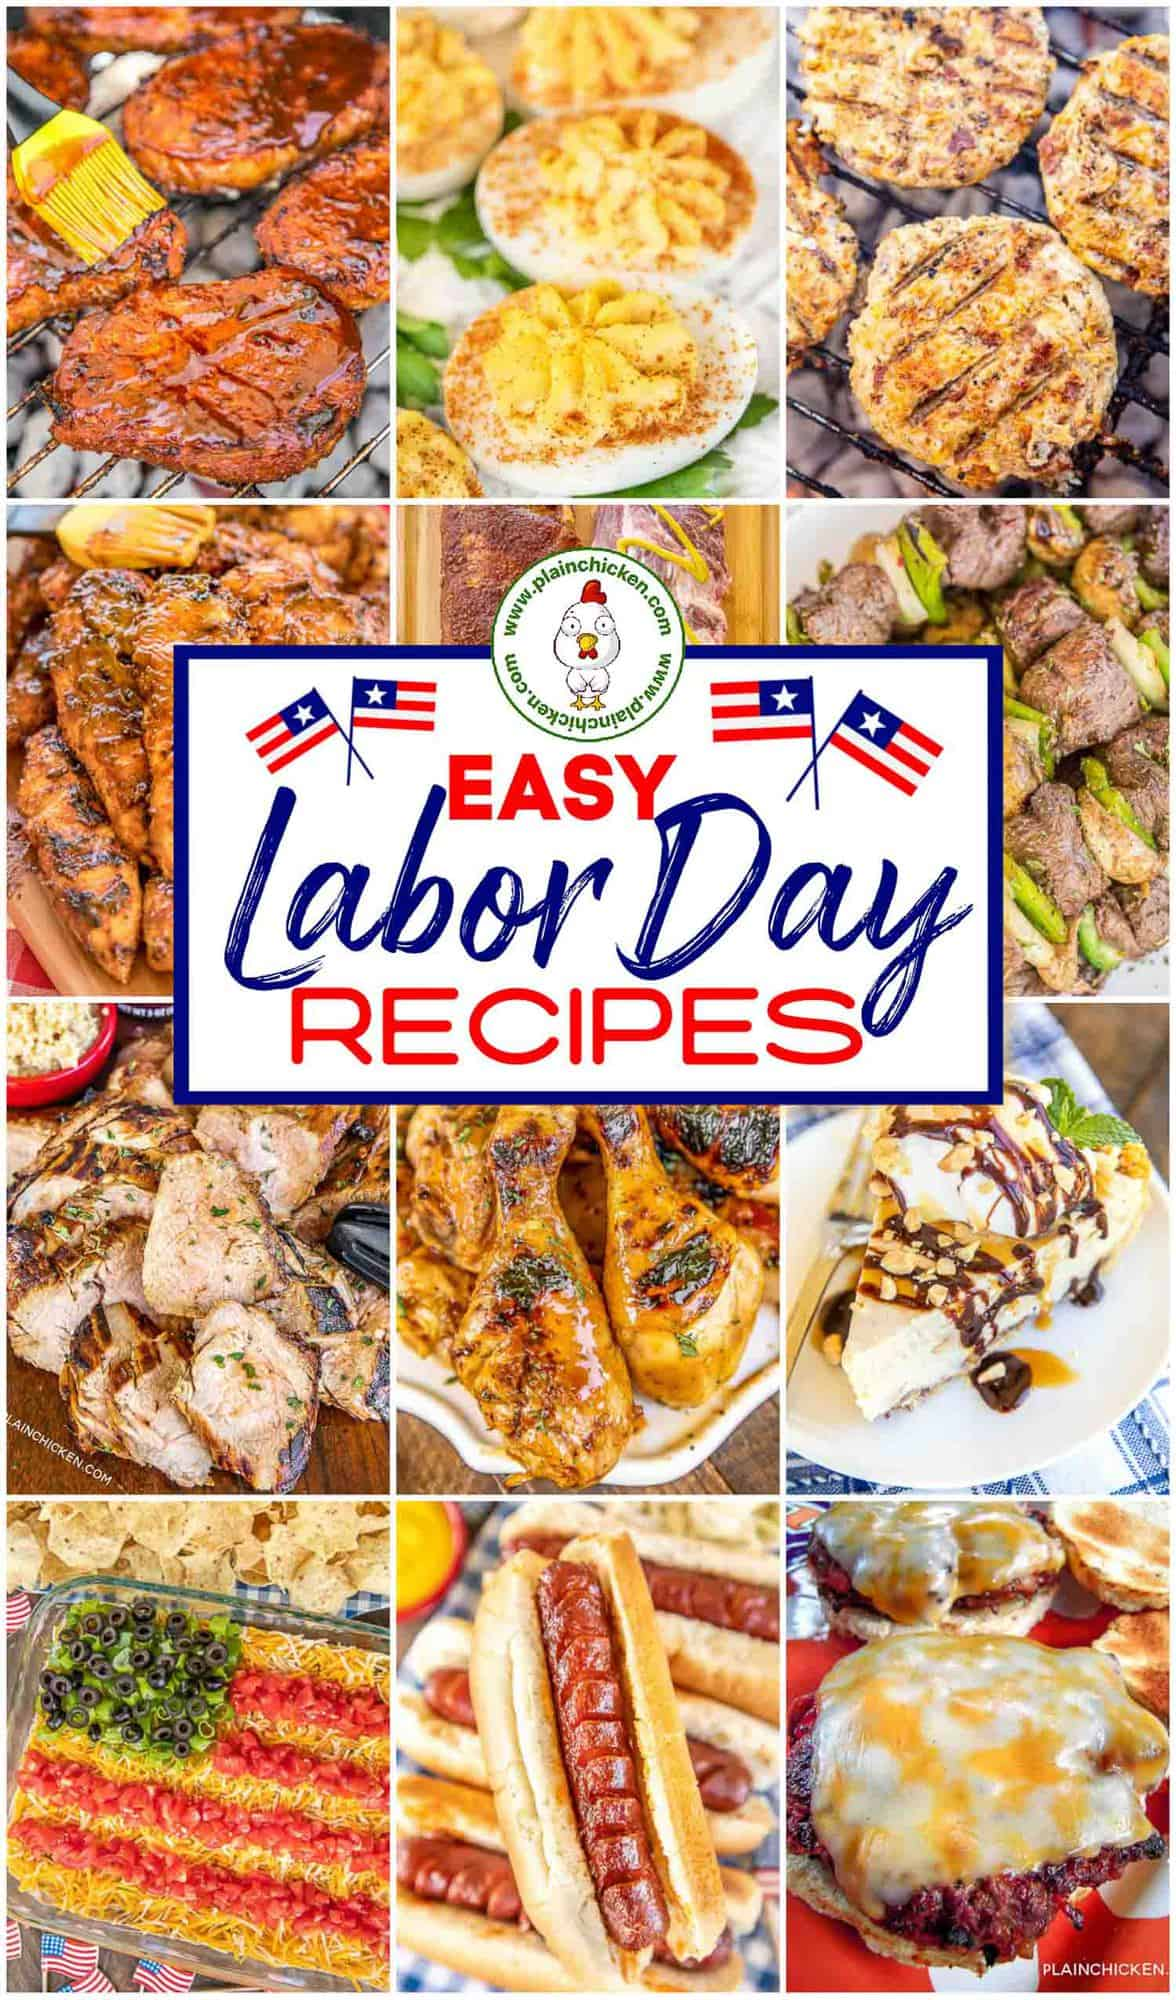 Labor Day Party Recipes - Plain Chicken